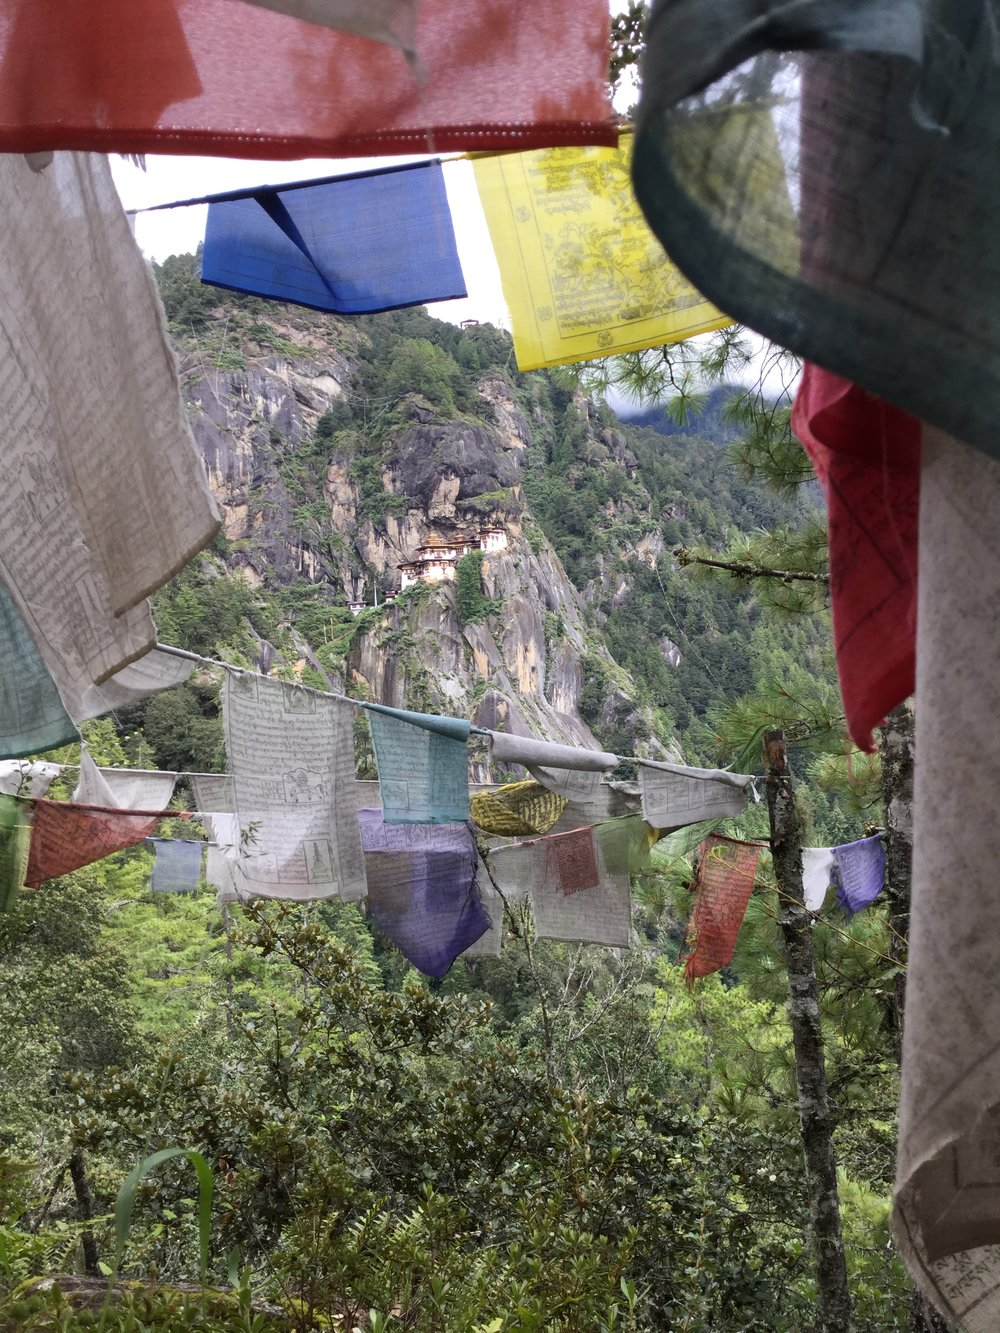 Paro Taktsang, The Tiger's Nest Monastery.